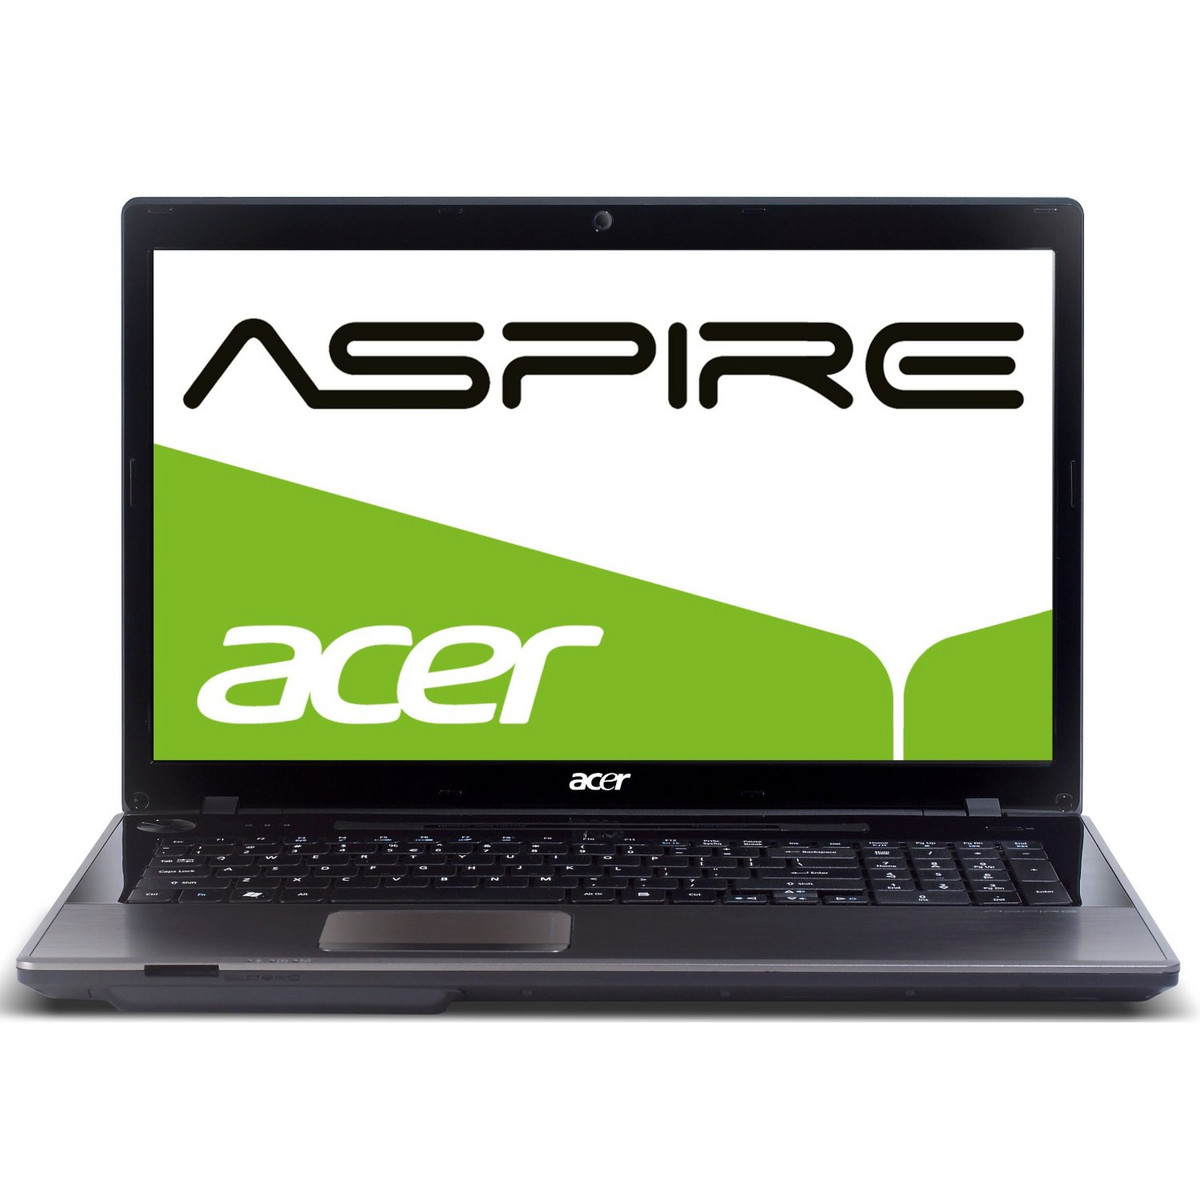 Acer Aspire 7750G Intel Chipset Driver Download